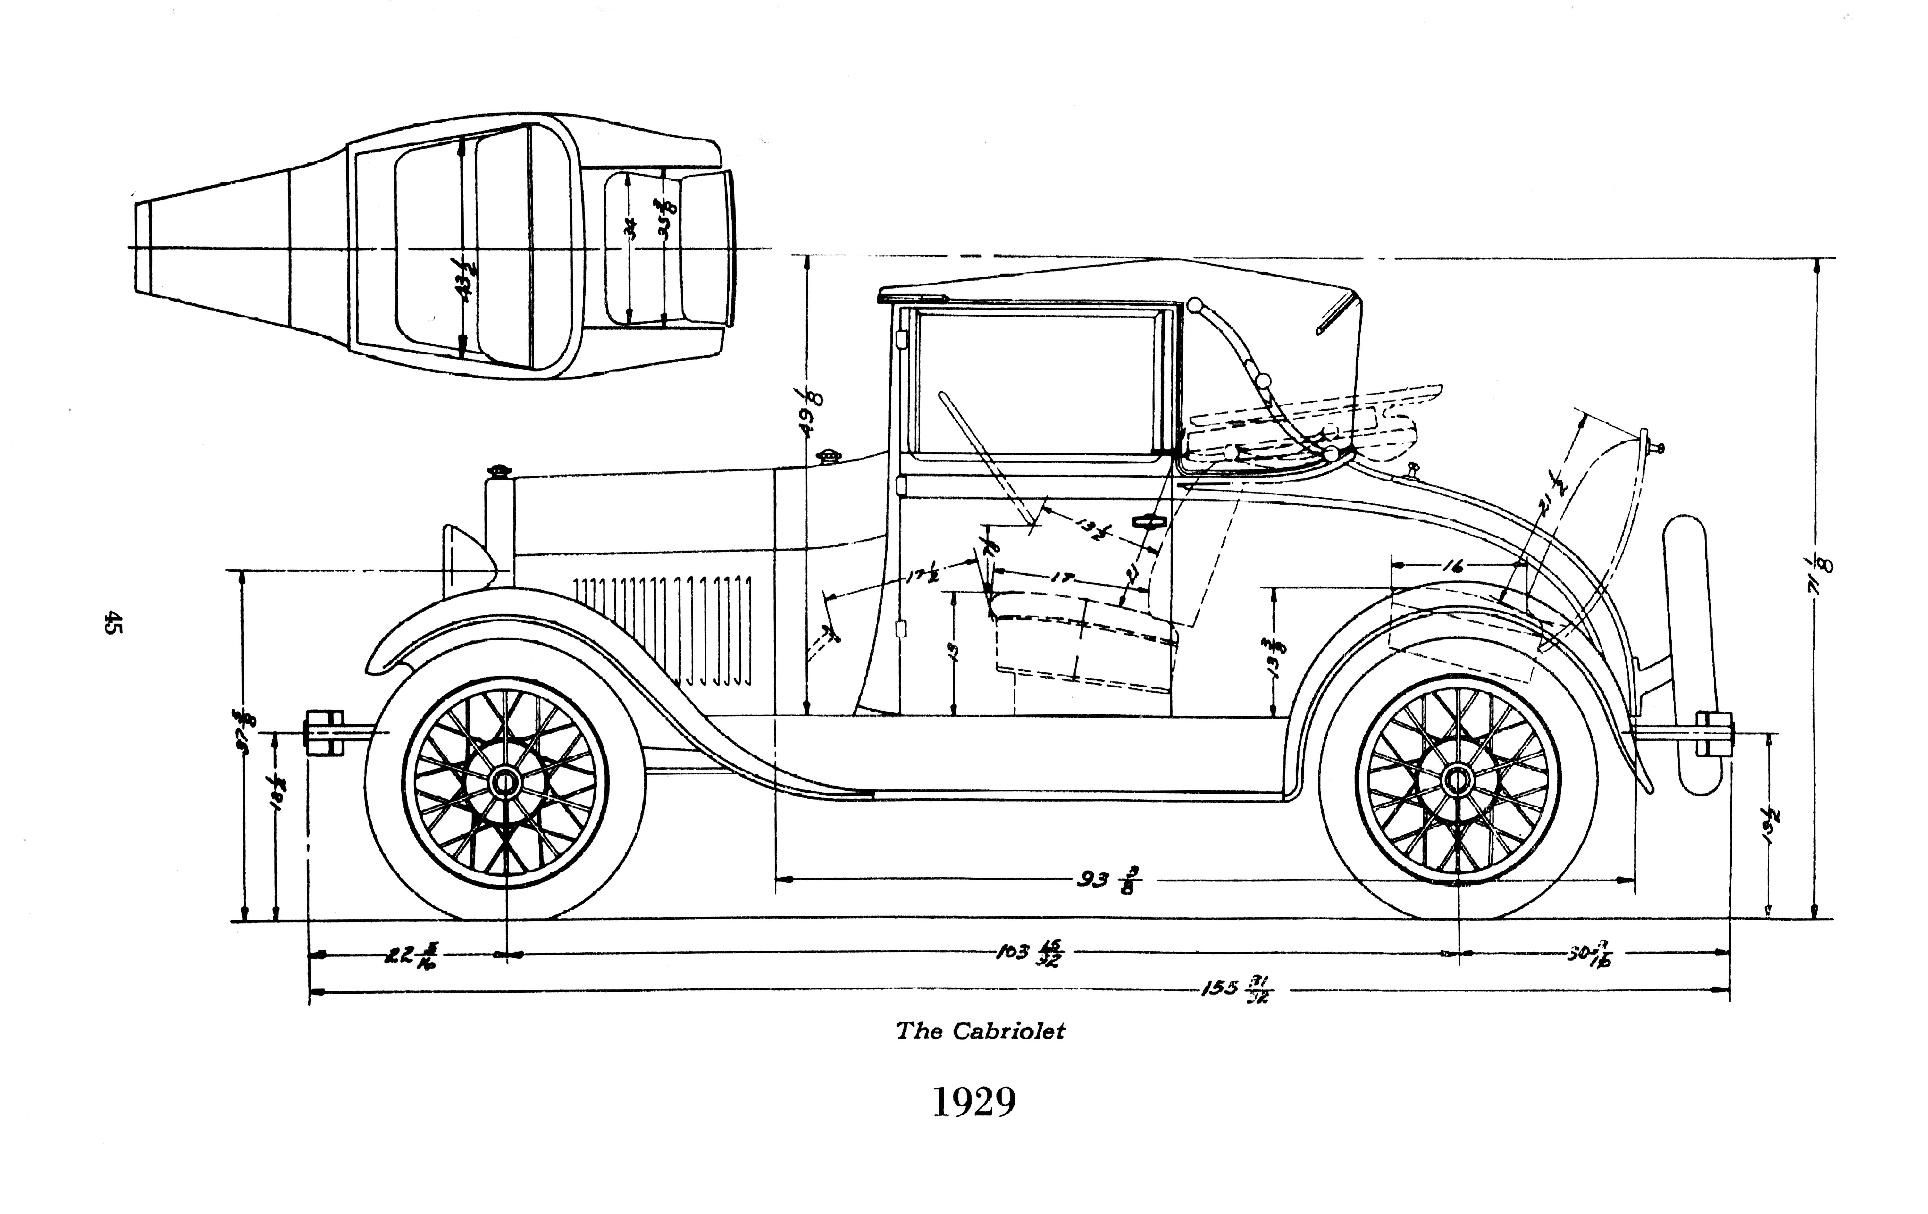 Model A Ford Engine Drawings Ford Model A Body Dimensions